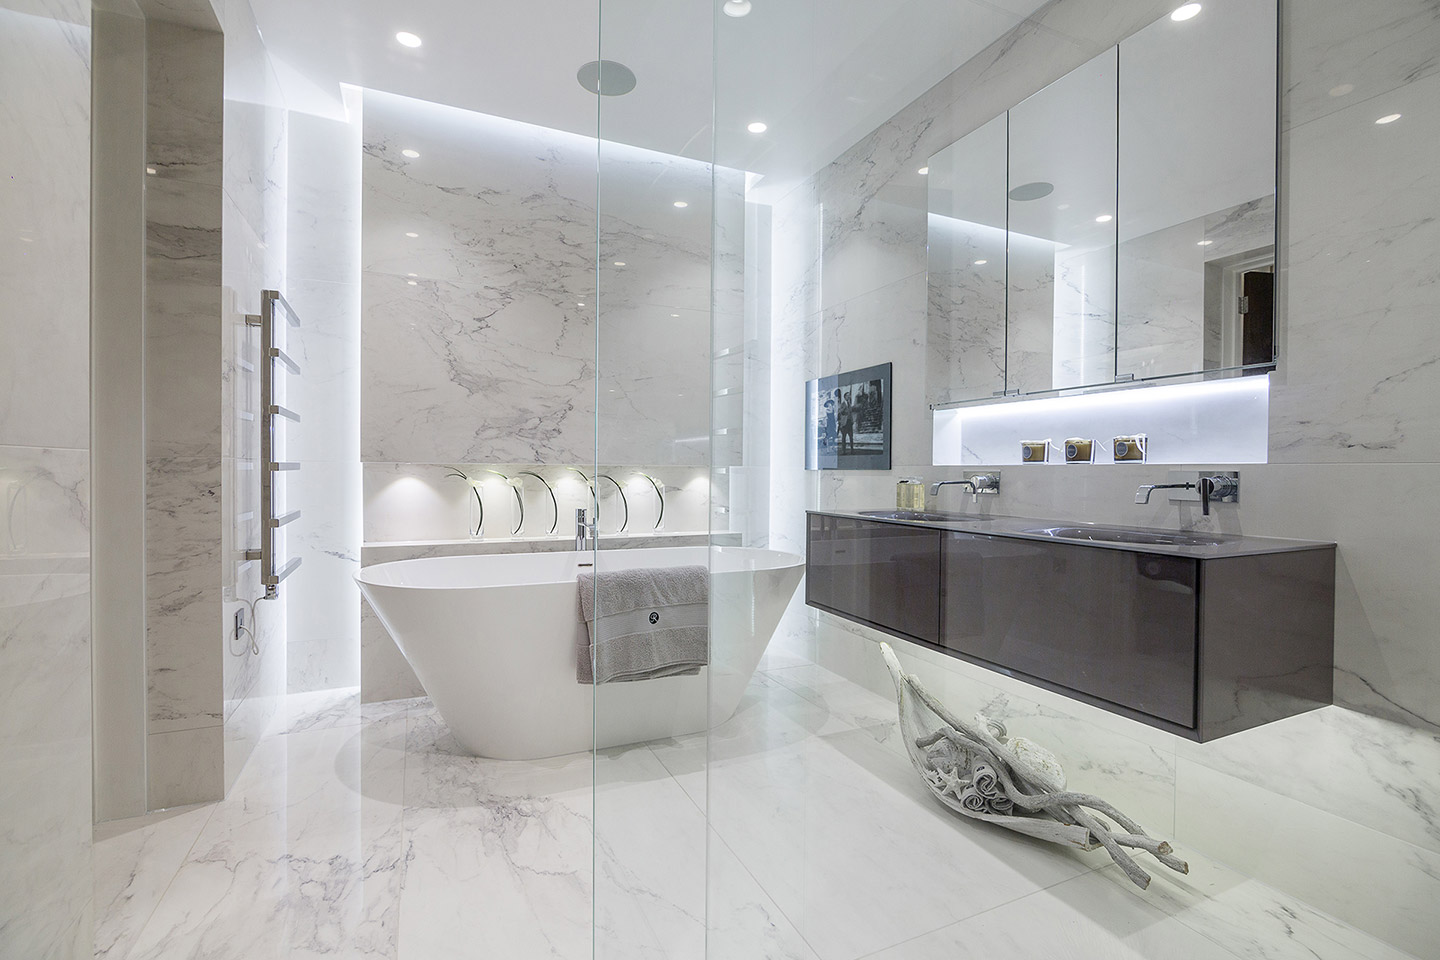 Luxury Bathrooms - Hadley Wood, London | Tiles & Baths Direct